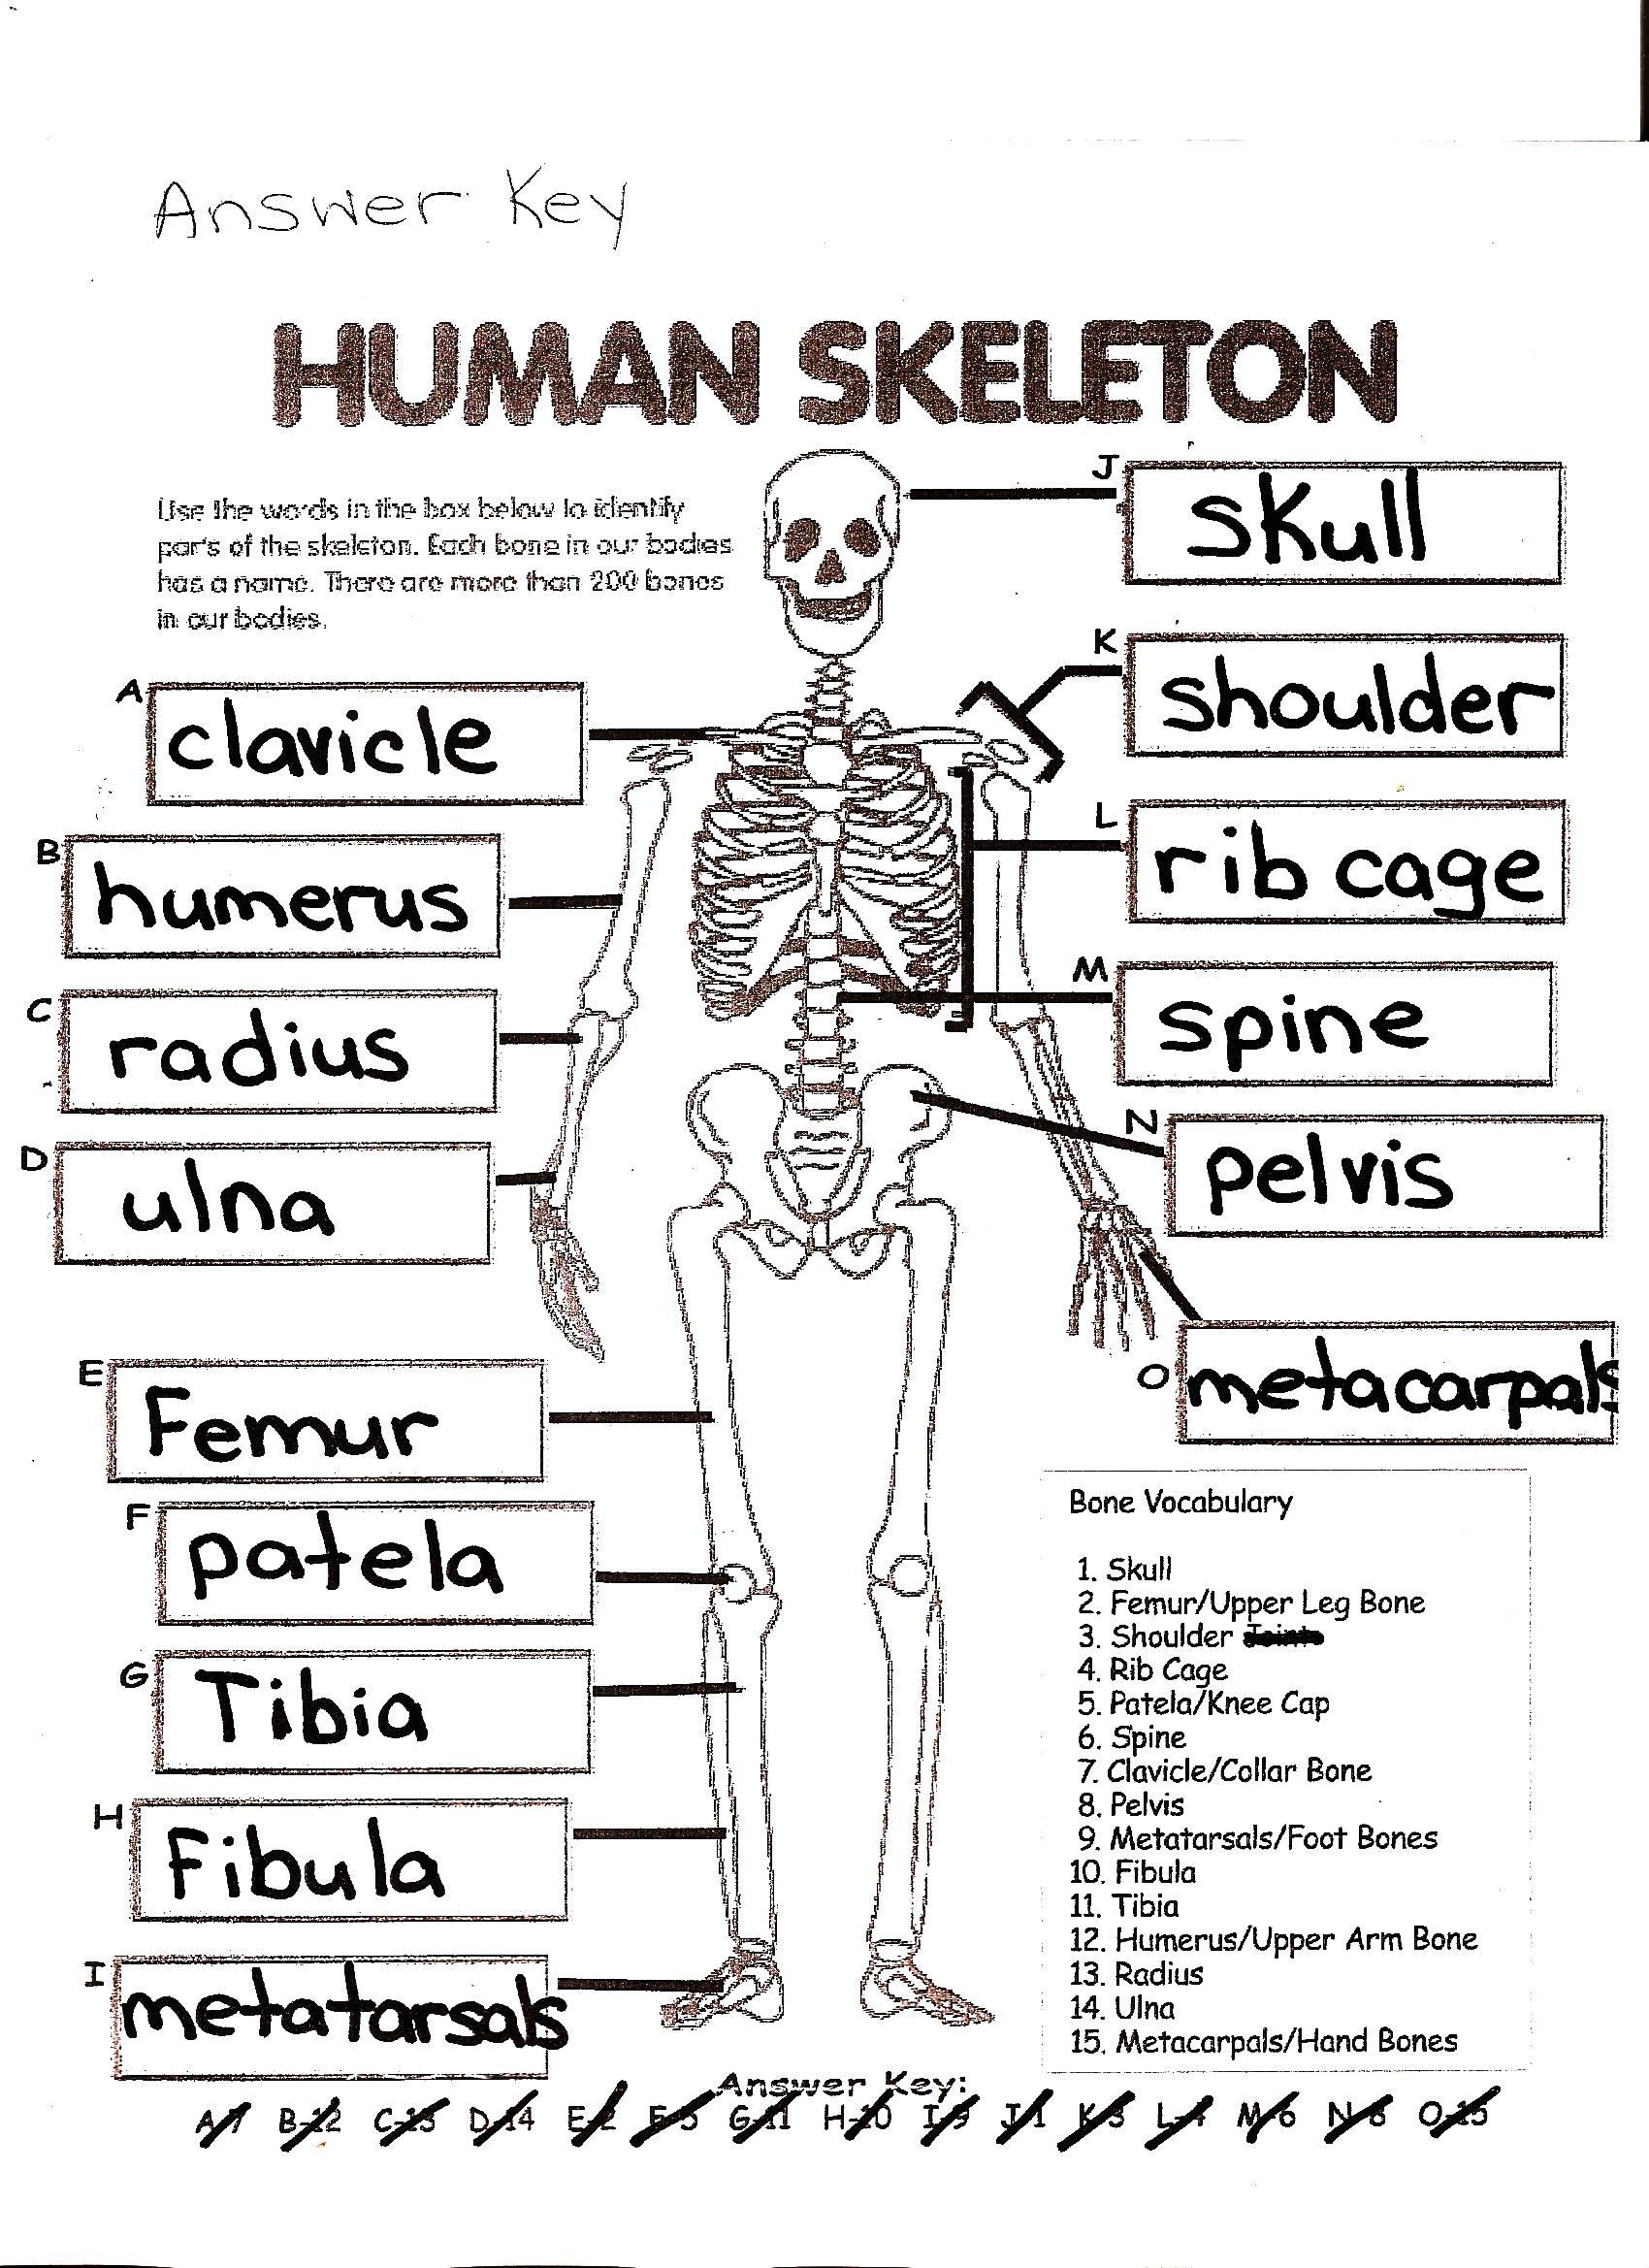 Worksheets Skeletal System Worksheets human skeleton quiz printable craftbrewswag info mckenna mrs home page skeleton